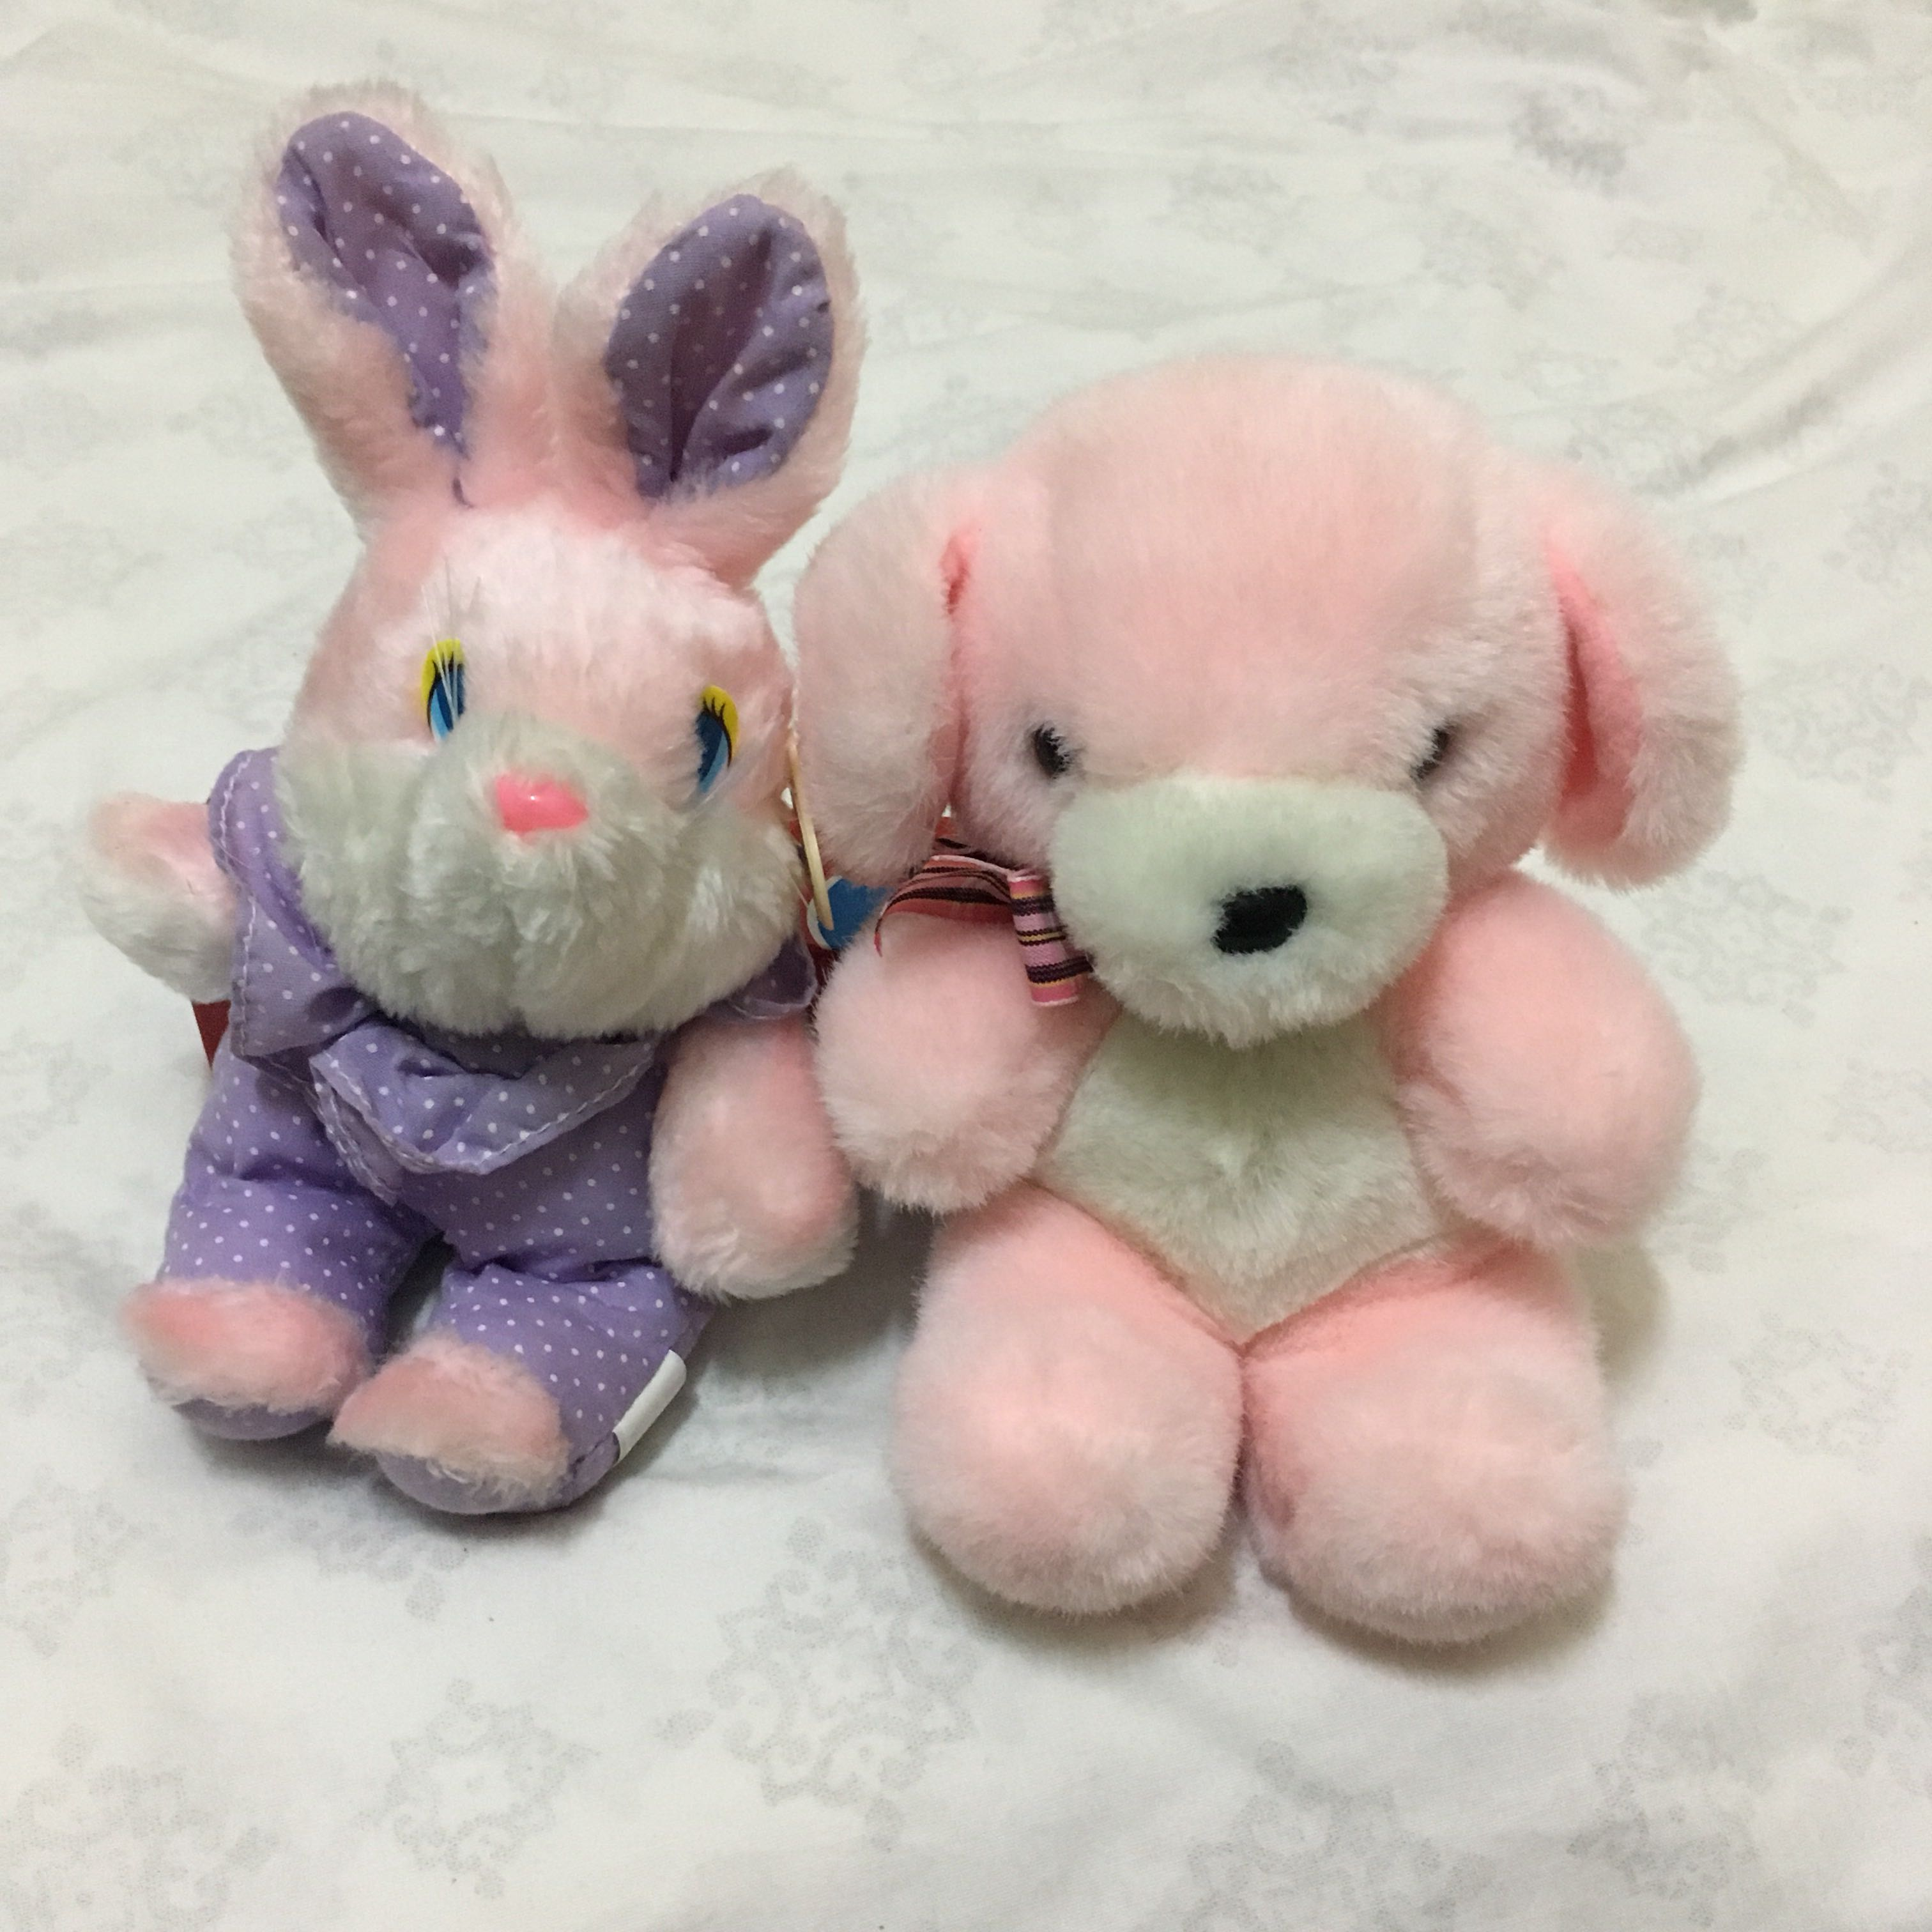 Imported Stuffed Toys from Canada